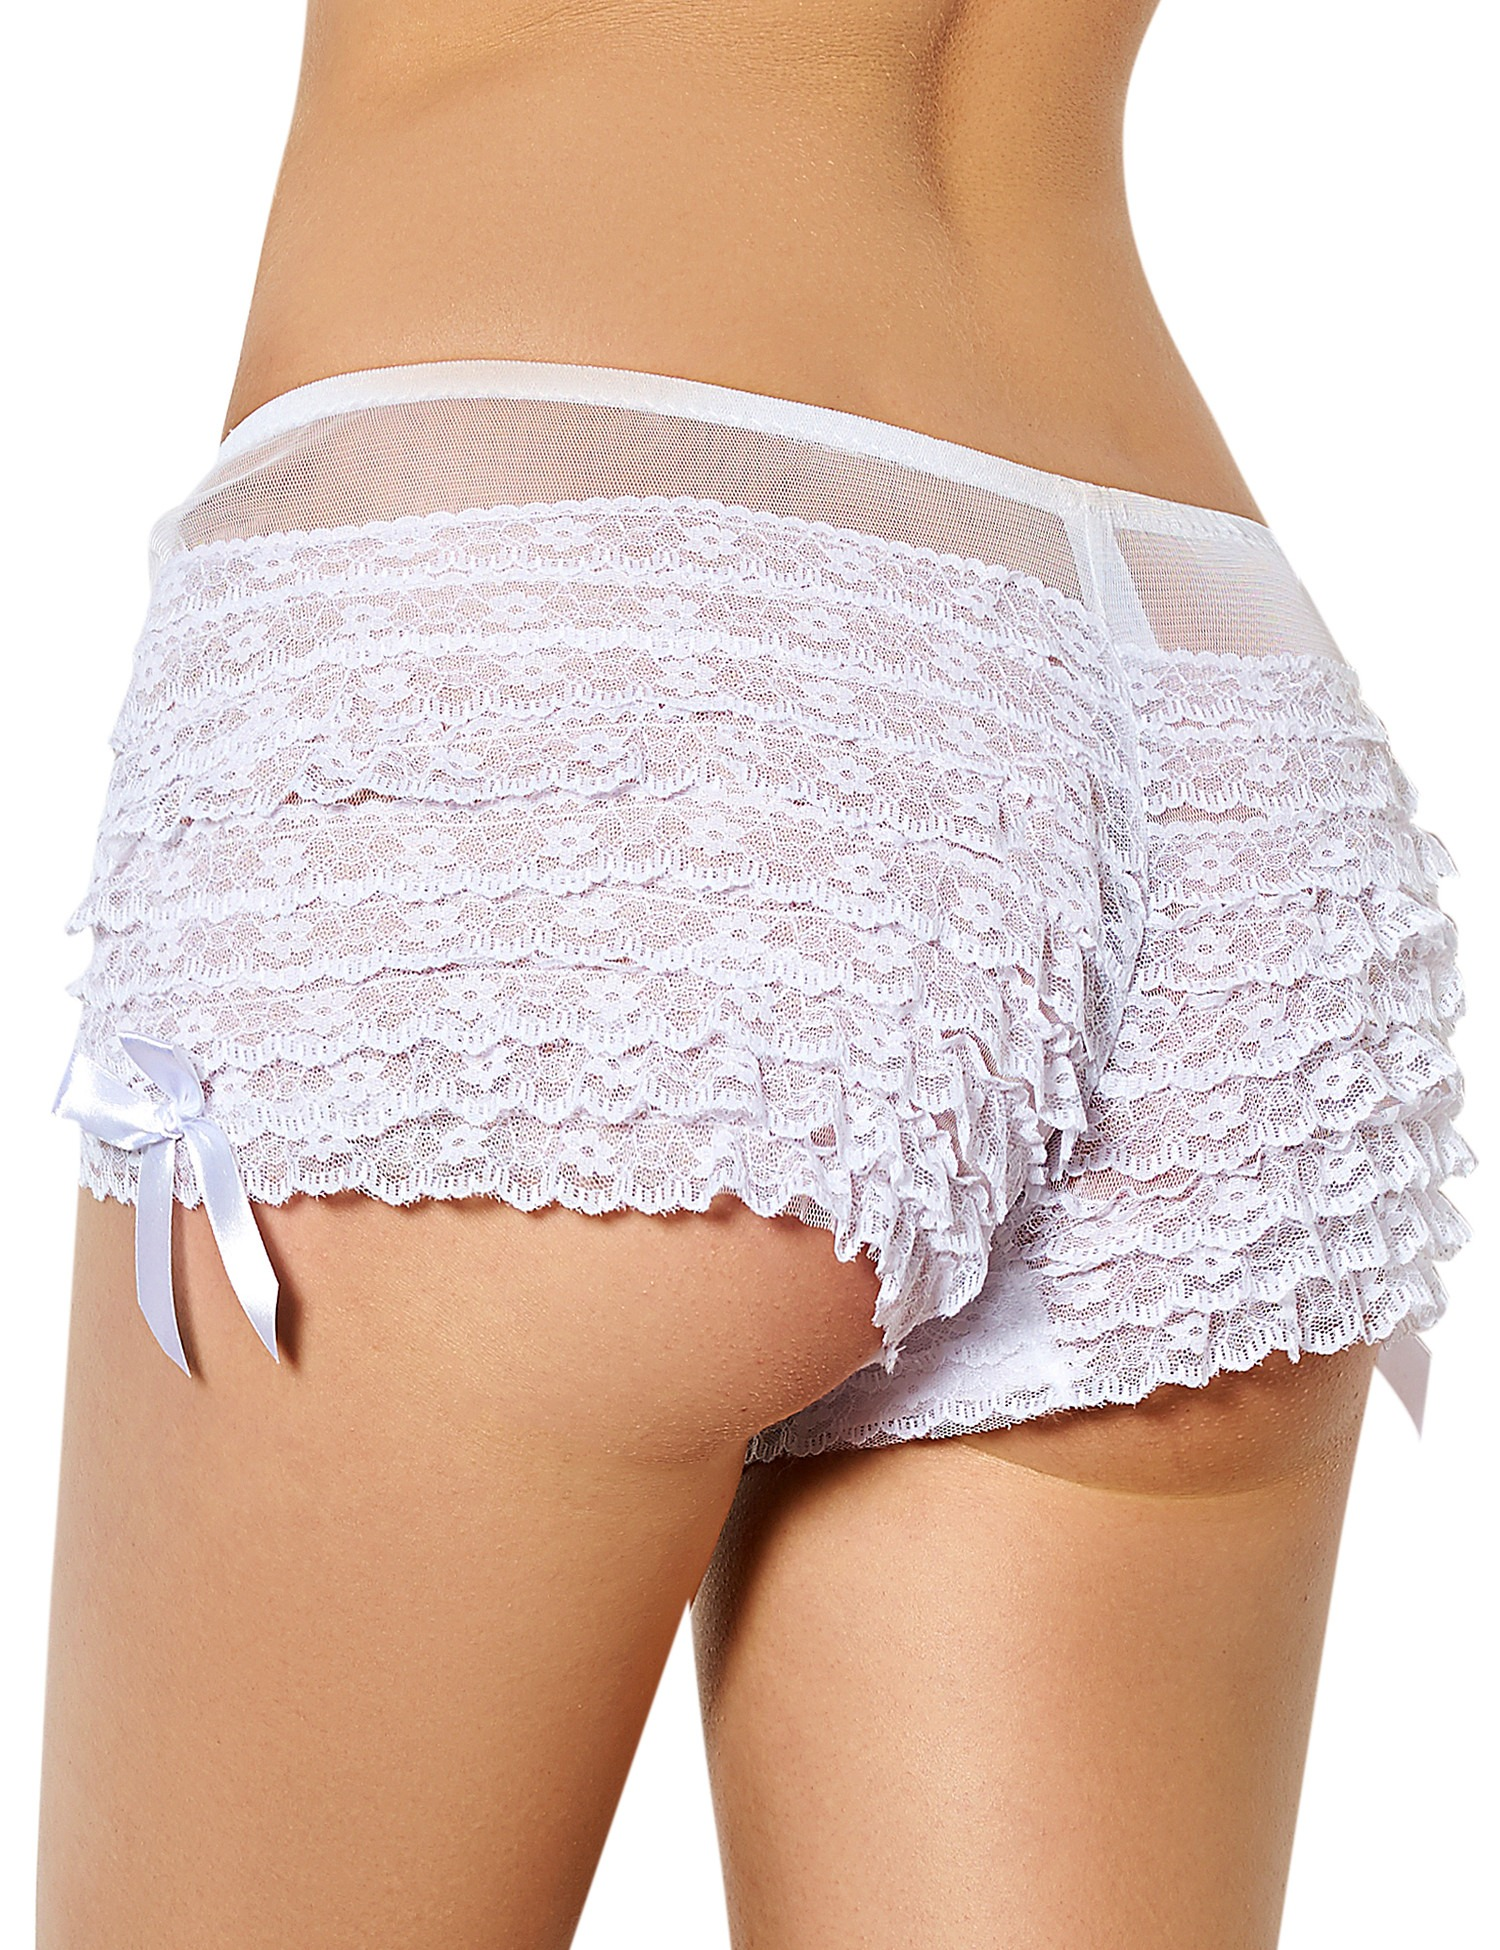 White Burlesque Frilly Lace Sheer Boyshort Knickers Side Bows